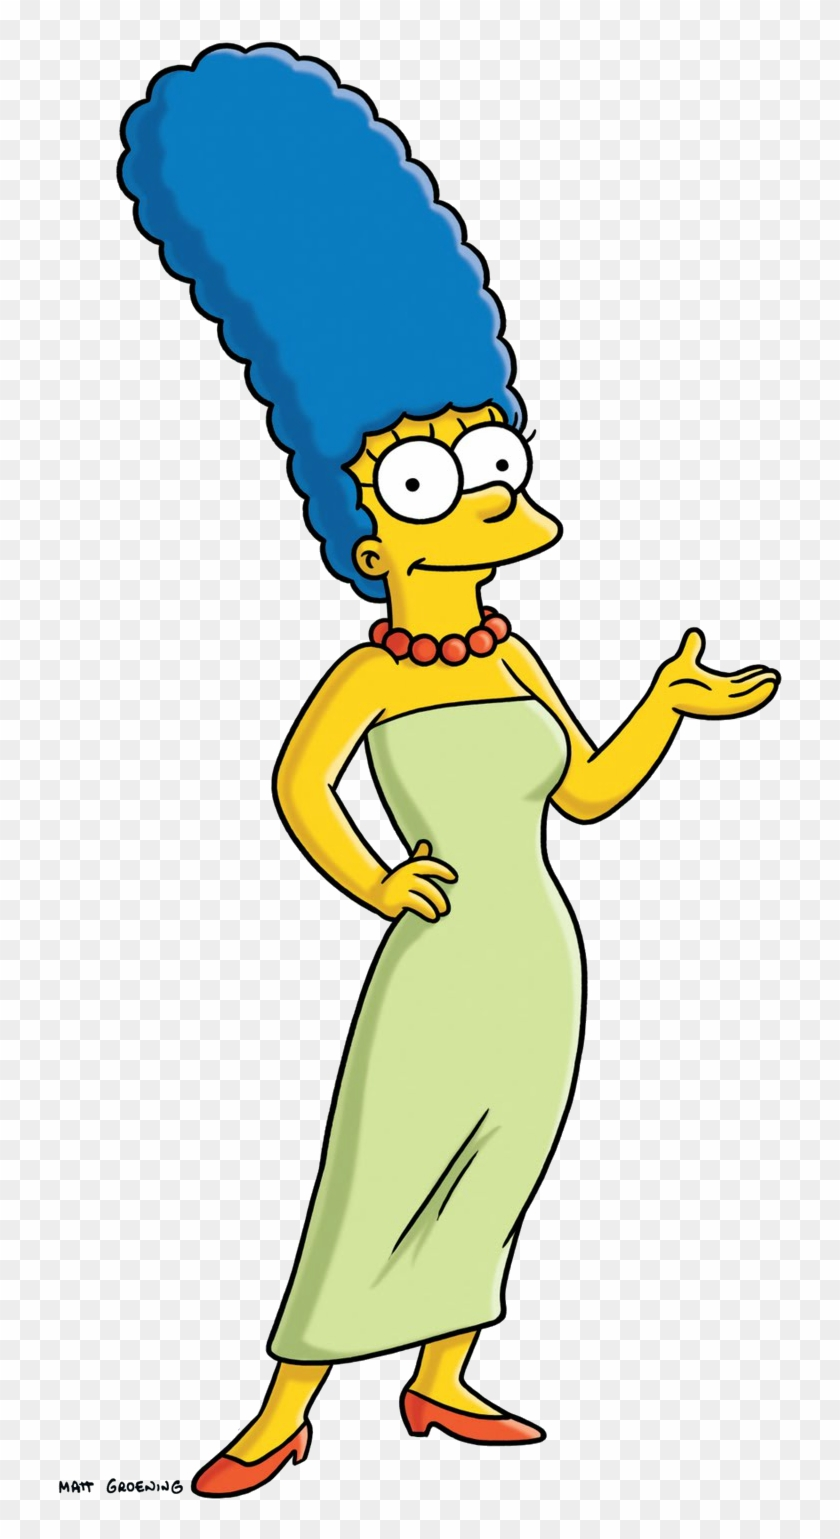 Marge Simpson, The Simpsons - Marge Simpson #84659